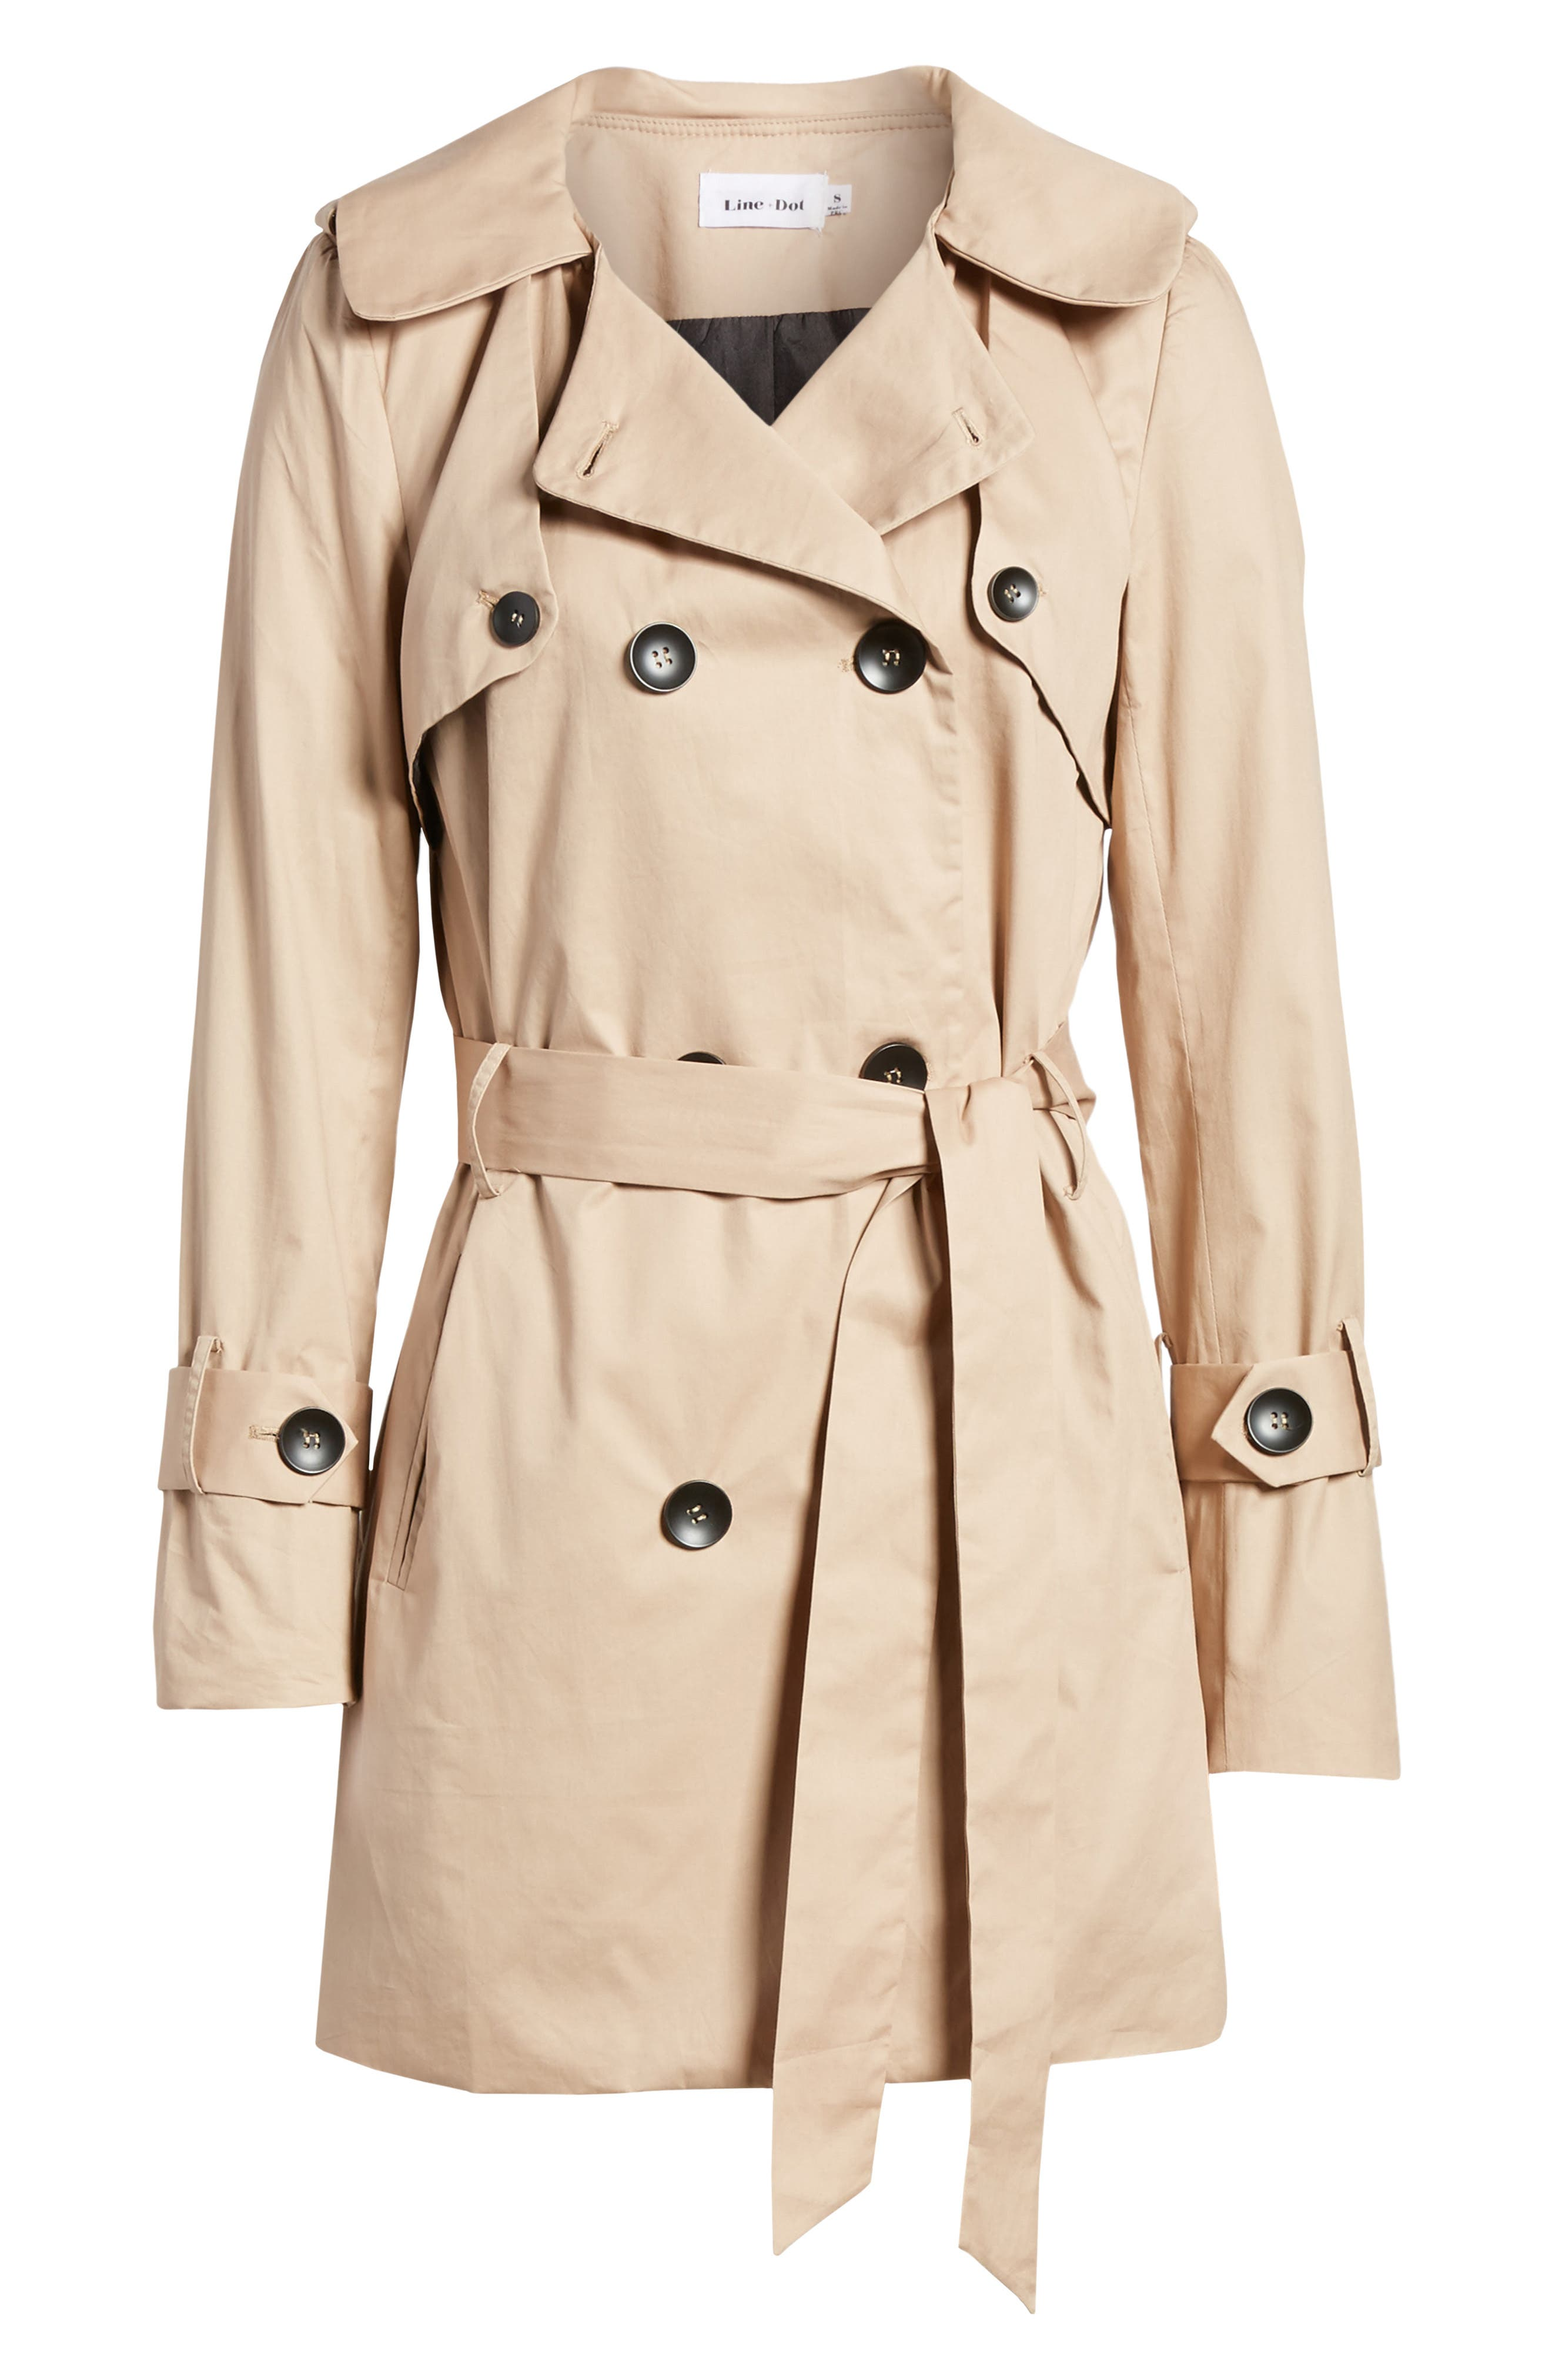 Moss Trench Coat,                             Alternate thumbnail 7, color,                             Sand